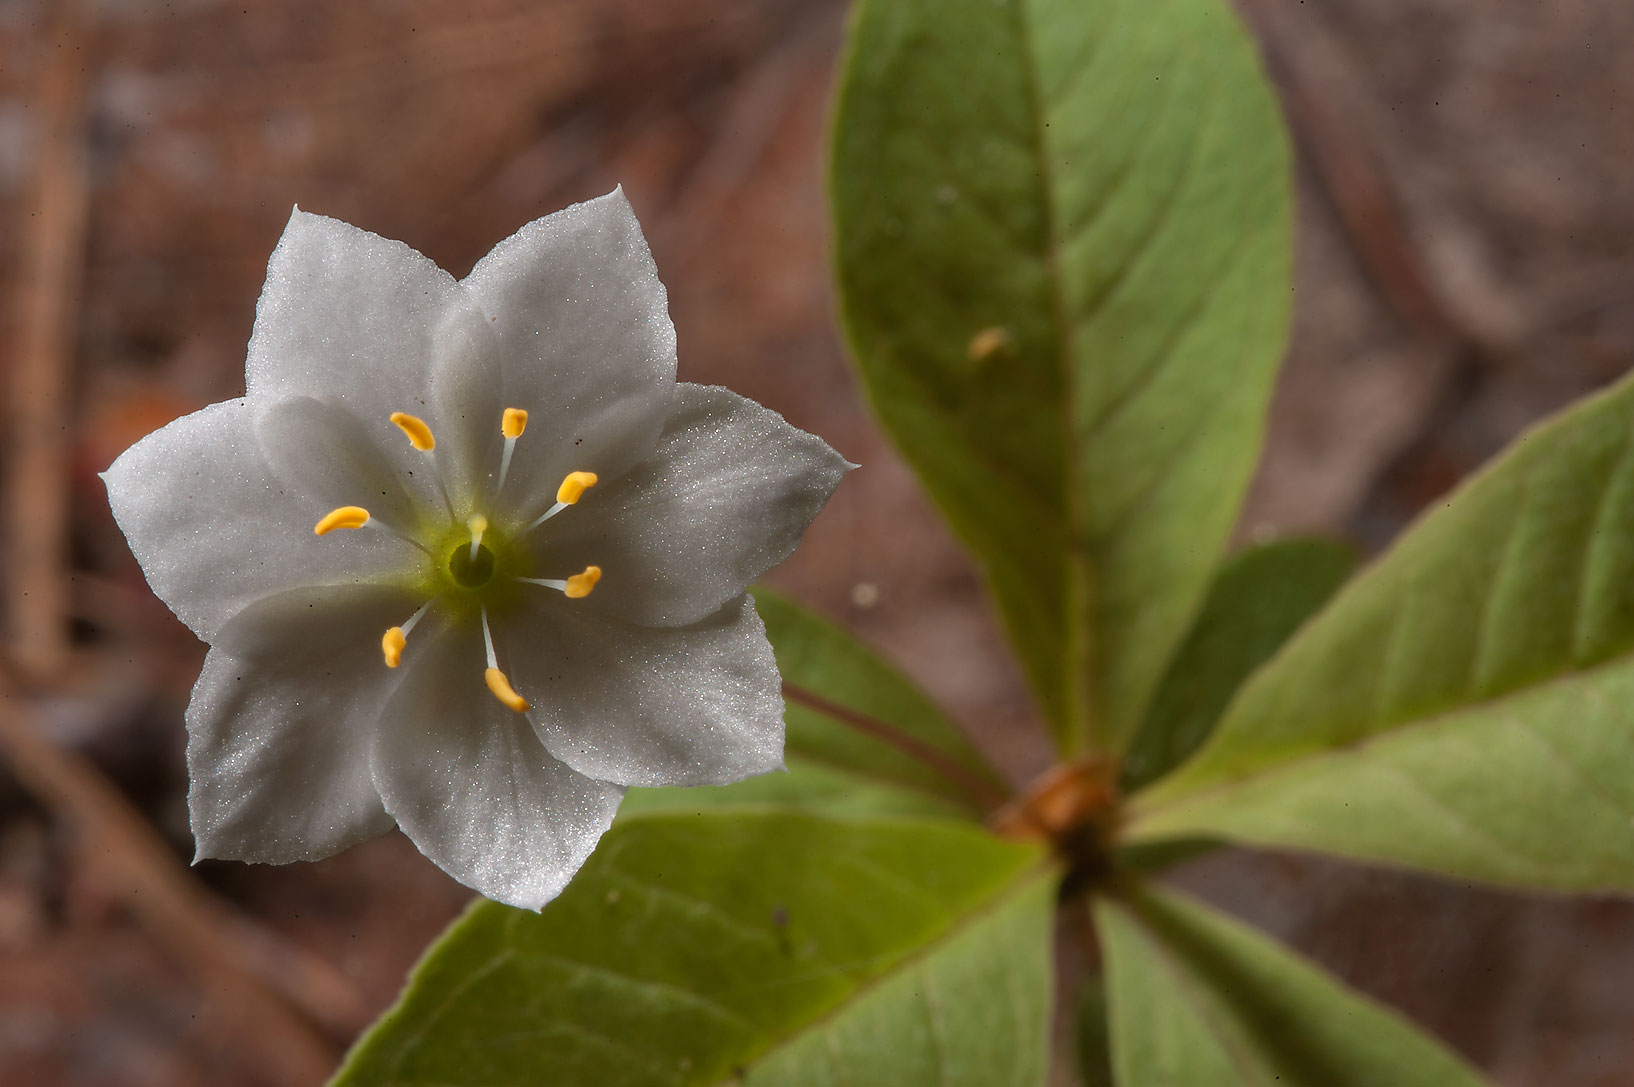 Blooming Arctic starflower (Trientalis europaea...north-west from St.Petersburg, Russia